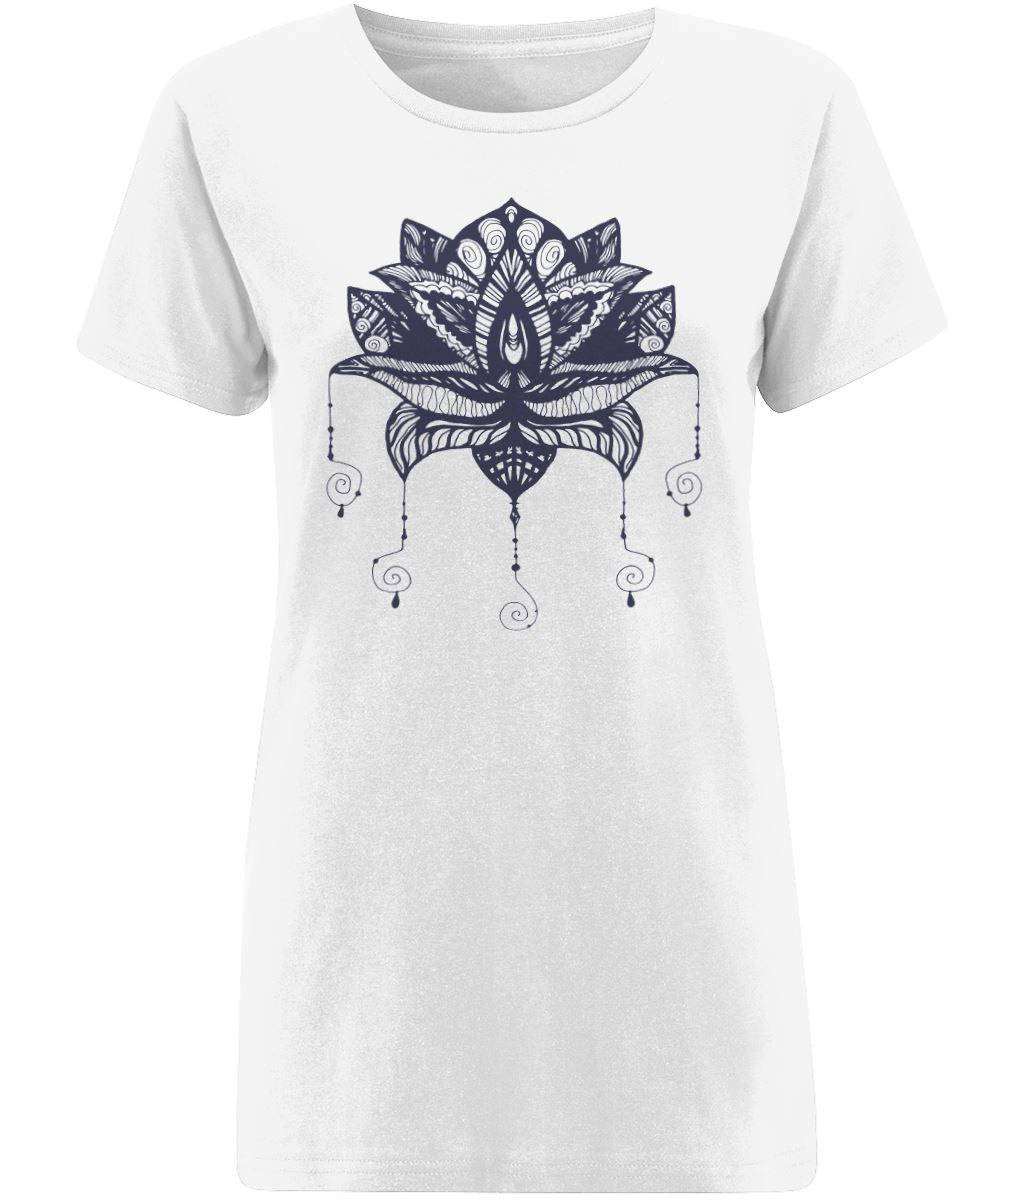 Lotus Flower I T-shirt Clothing IndianBelieves X-Small White